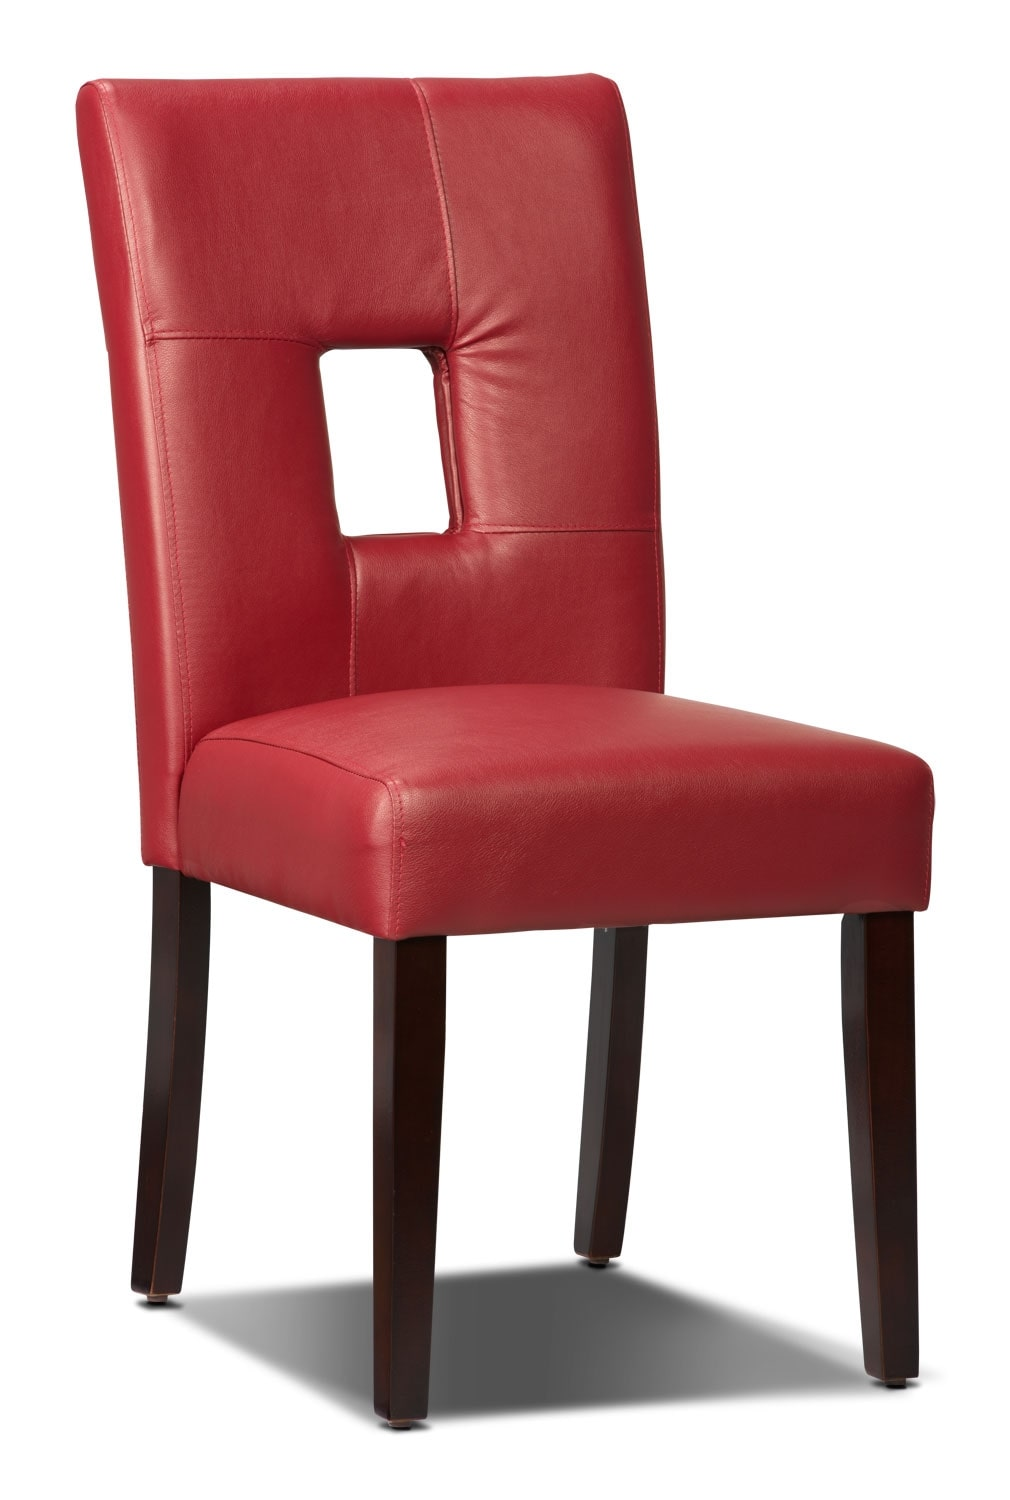 McKena Faux Leather Dining Chair – Red